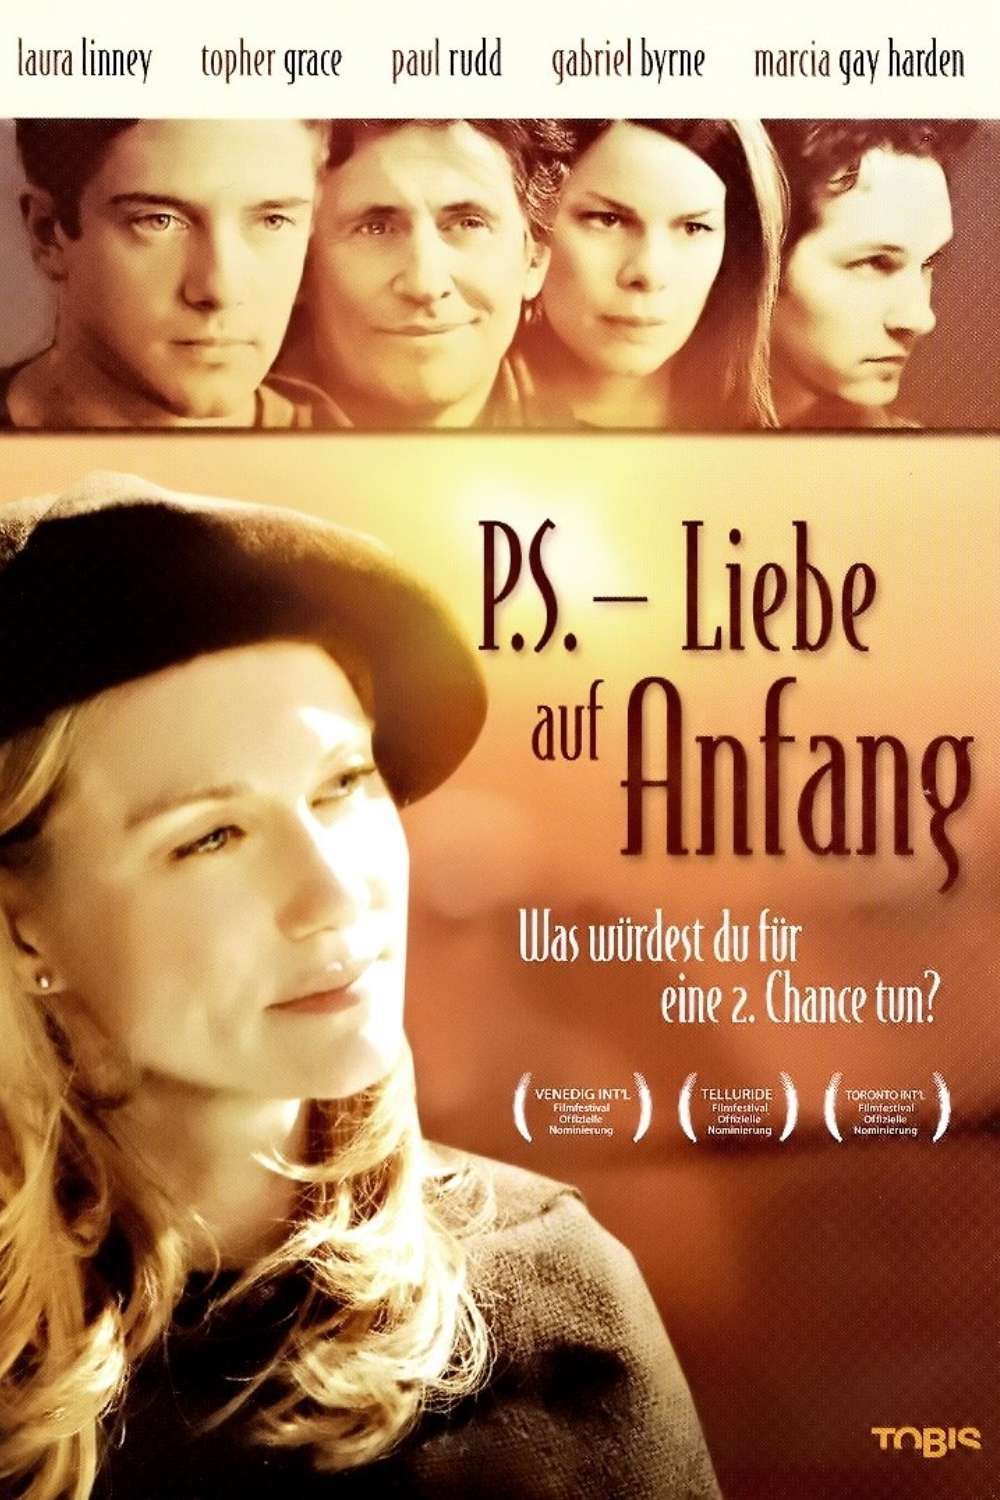 """""""P.S. - Liebe auf Anfang"""""""